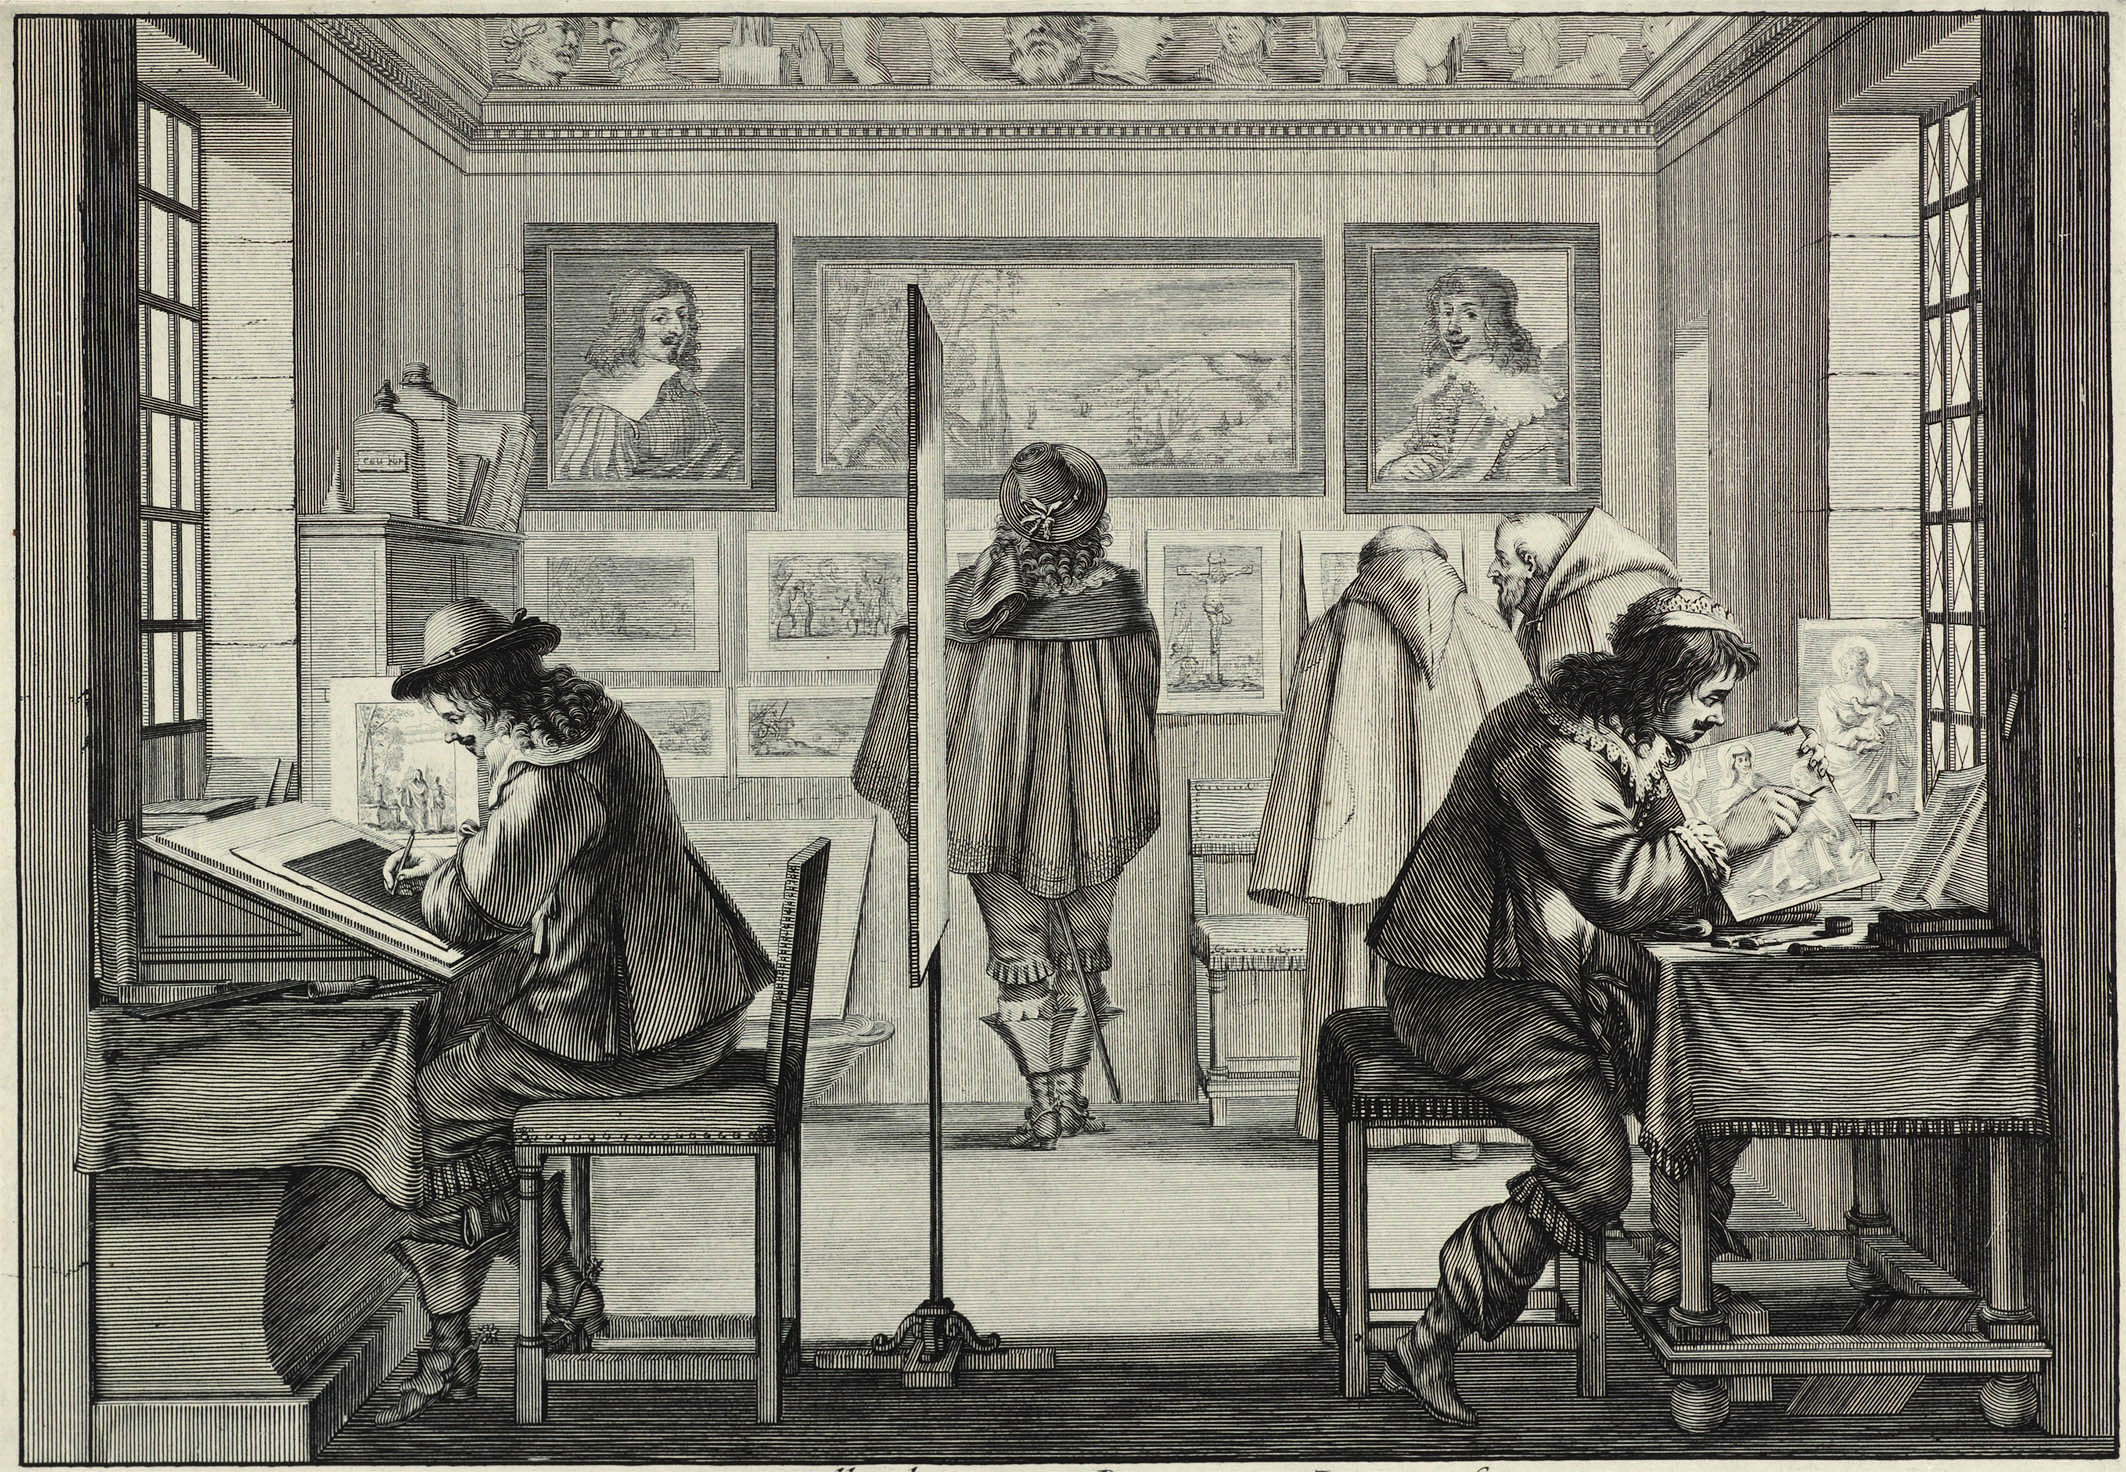 Abraham Bosse (French, 1602 - 1676), Engravers, 1642, etching, Rosenwald Collection 1948.11.35